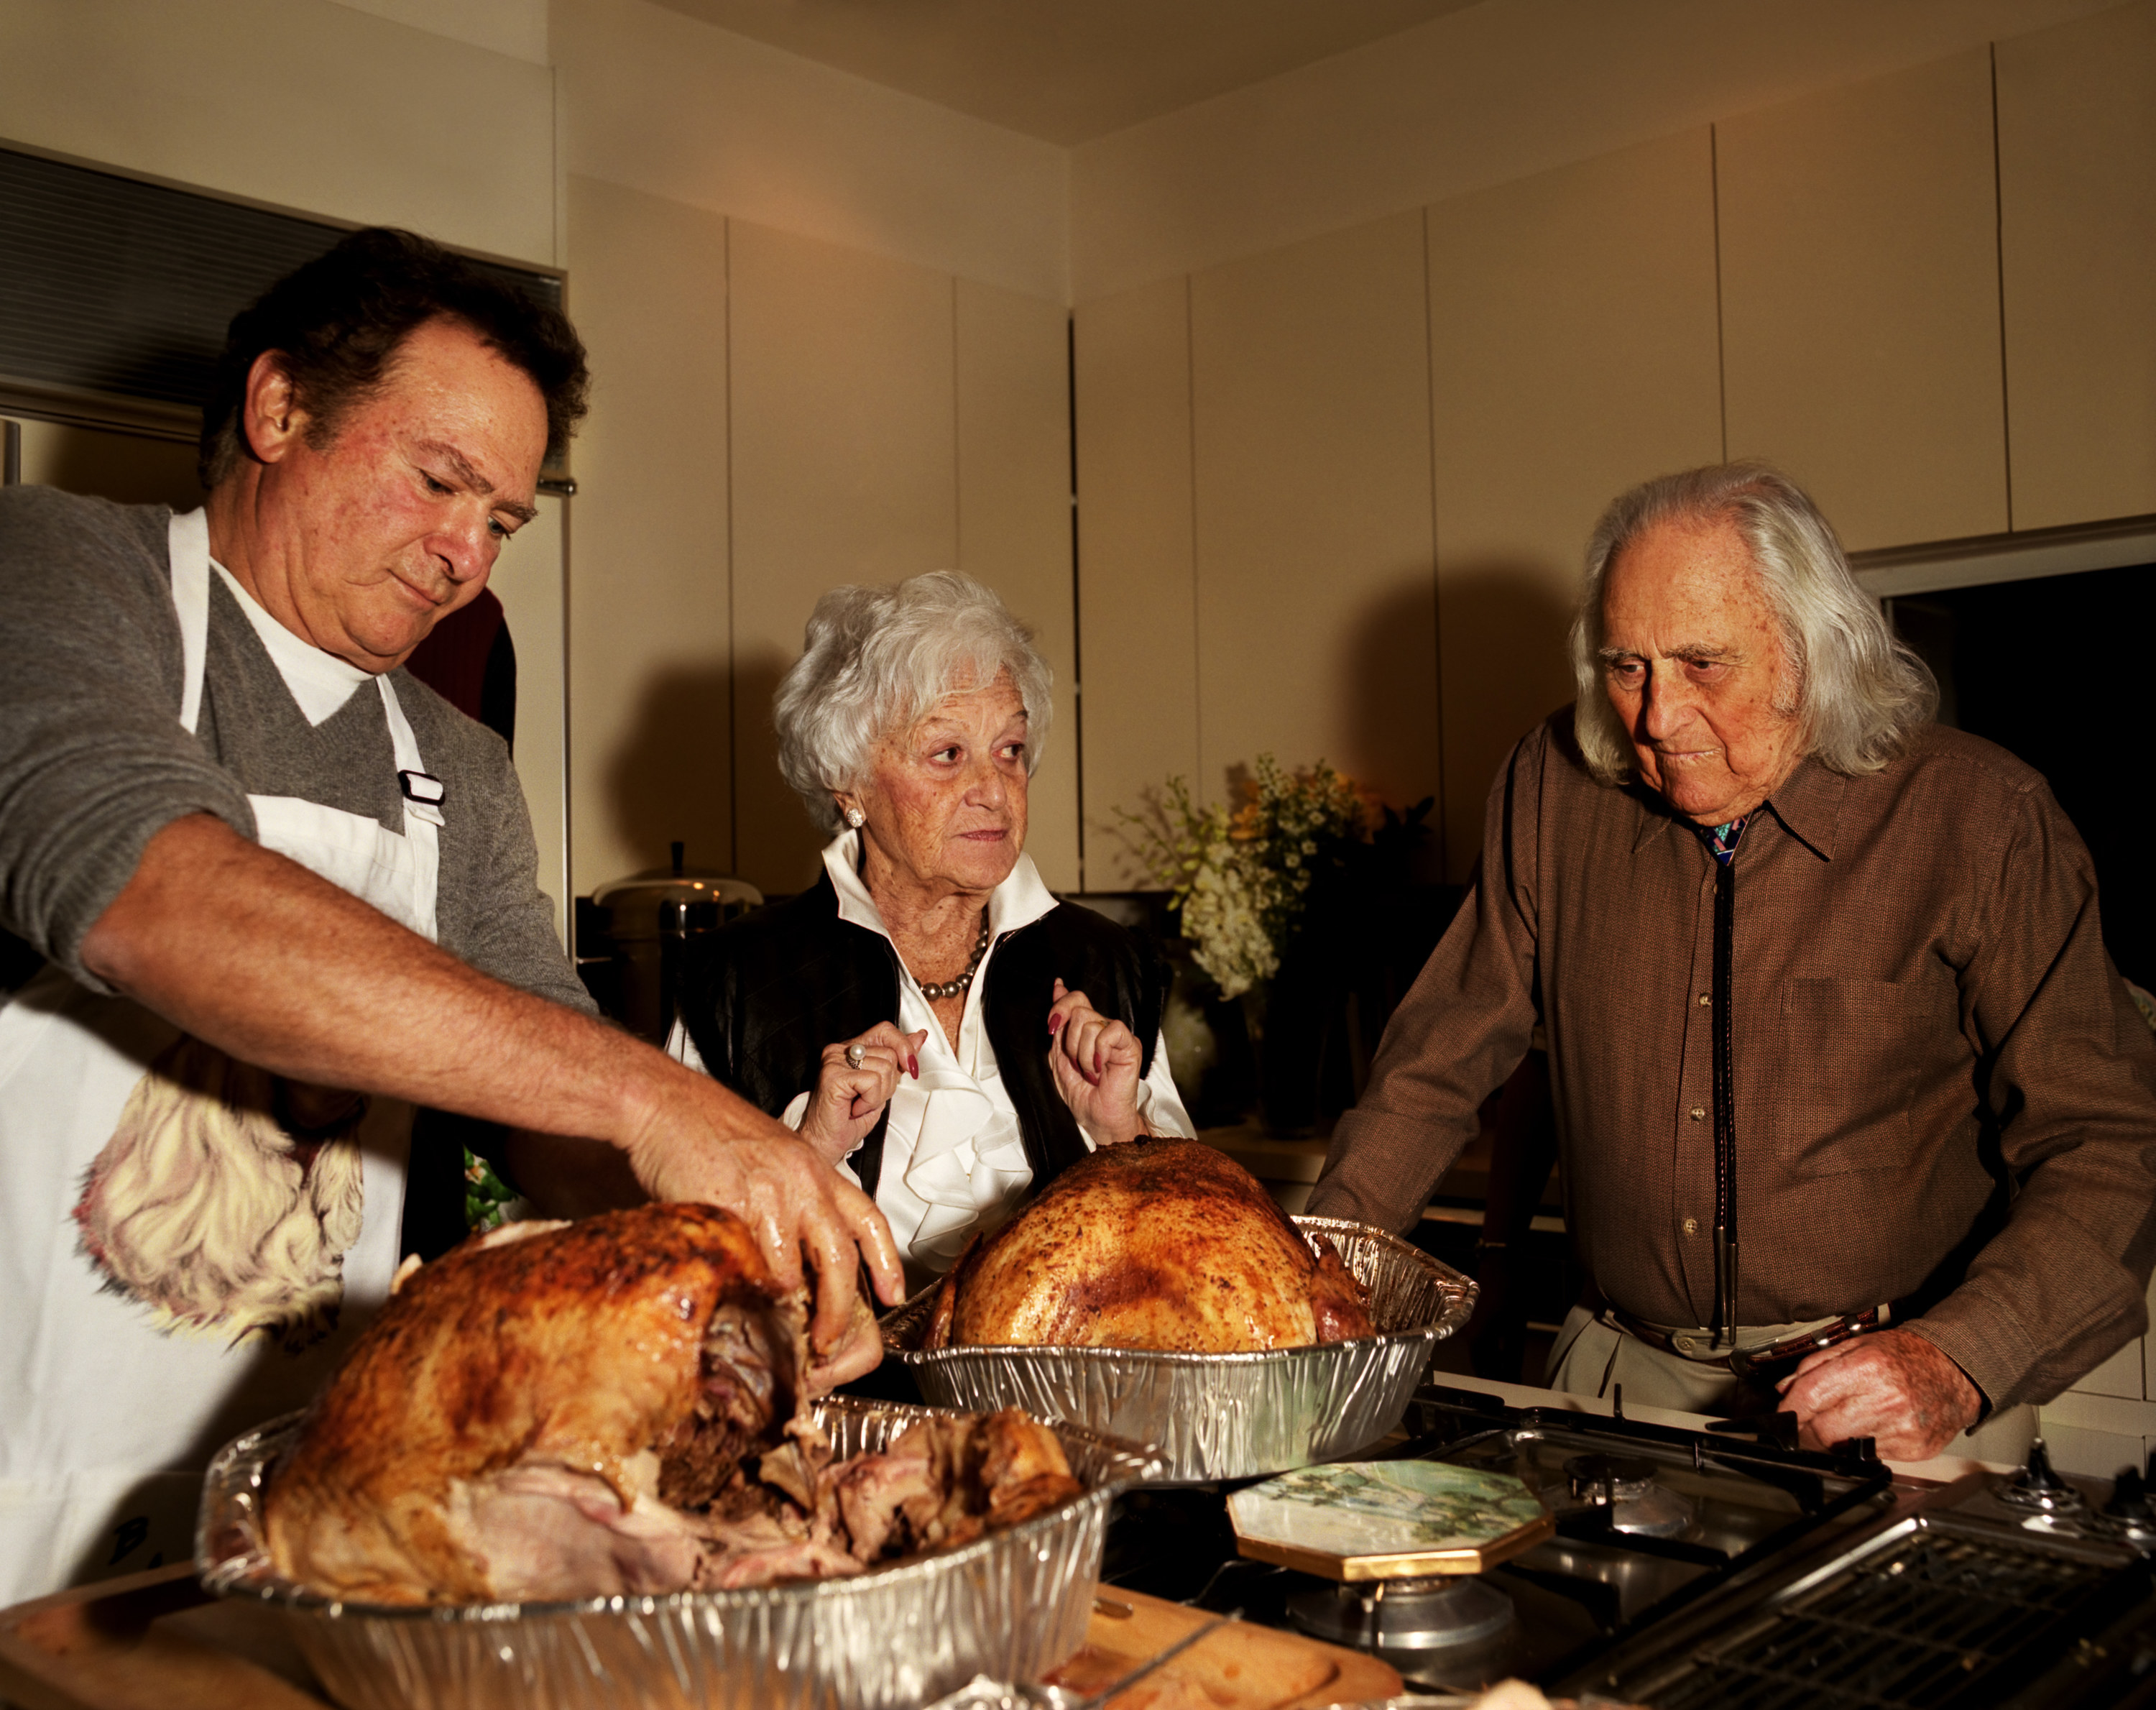 A man, an older woman, and an older man with two turkeys in front of them